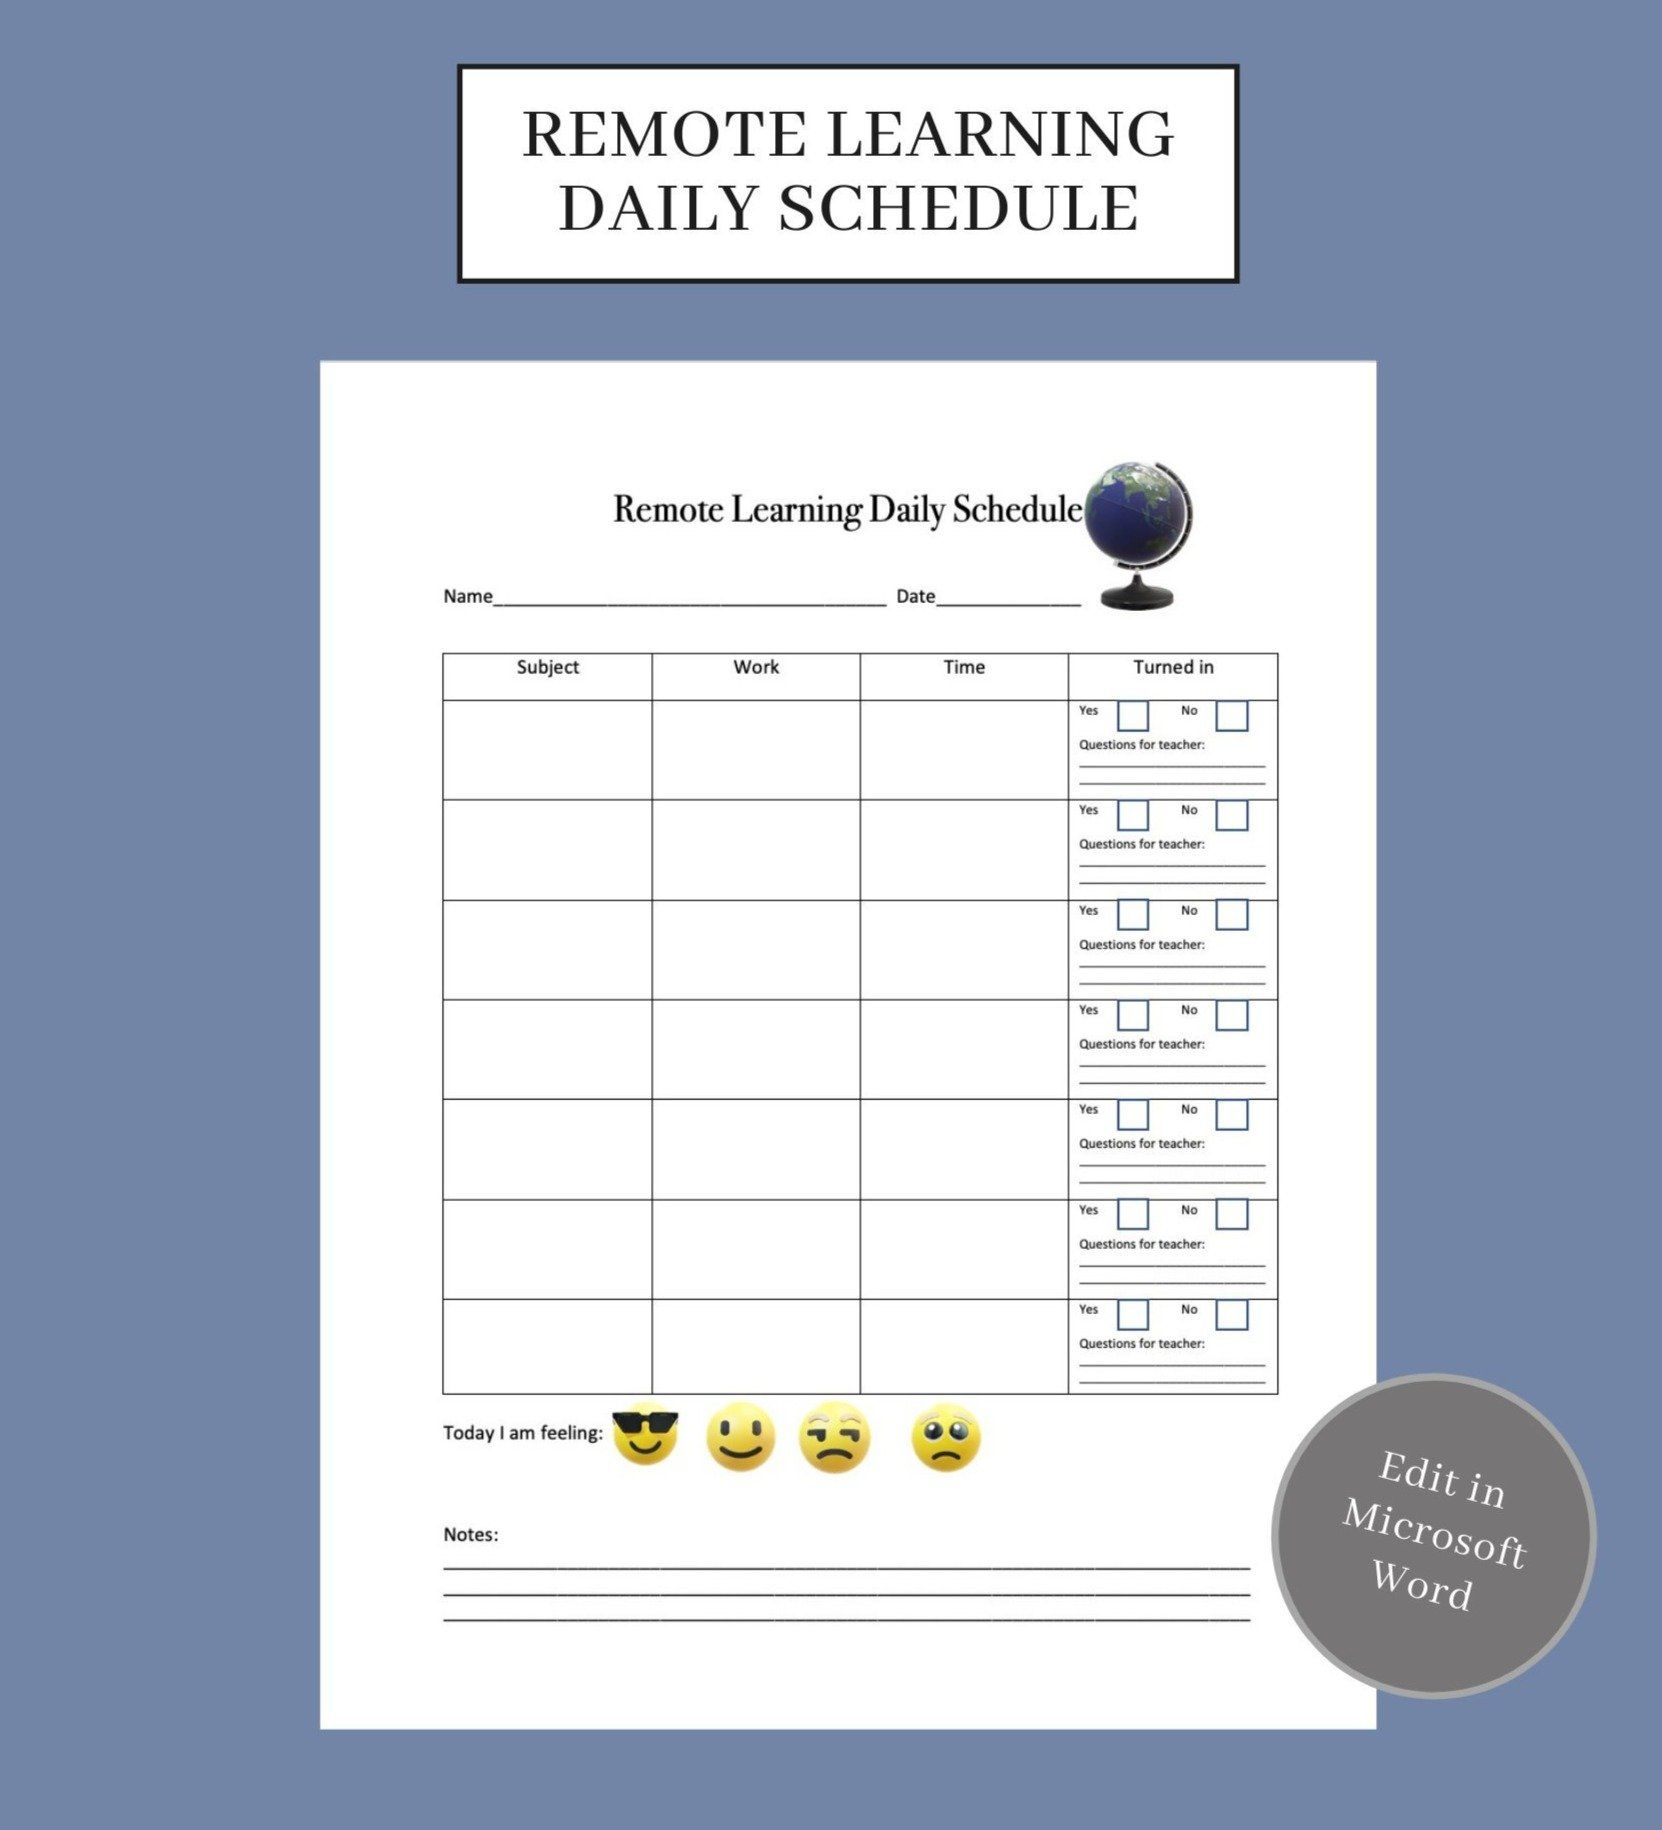 Digital Remote Learning Daily Schedule In 2021 Daily Schedule Learning Schedule Microsoft word daily schedule template